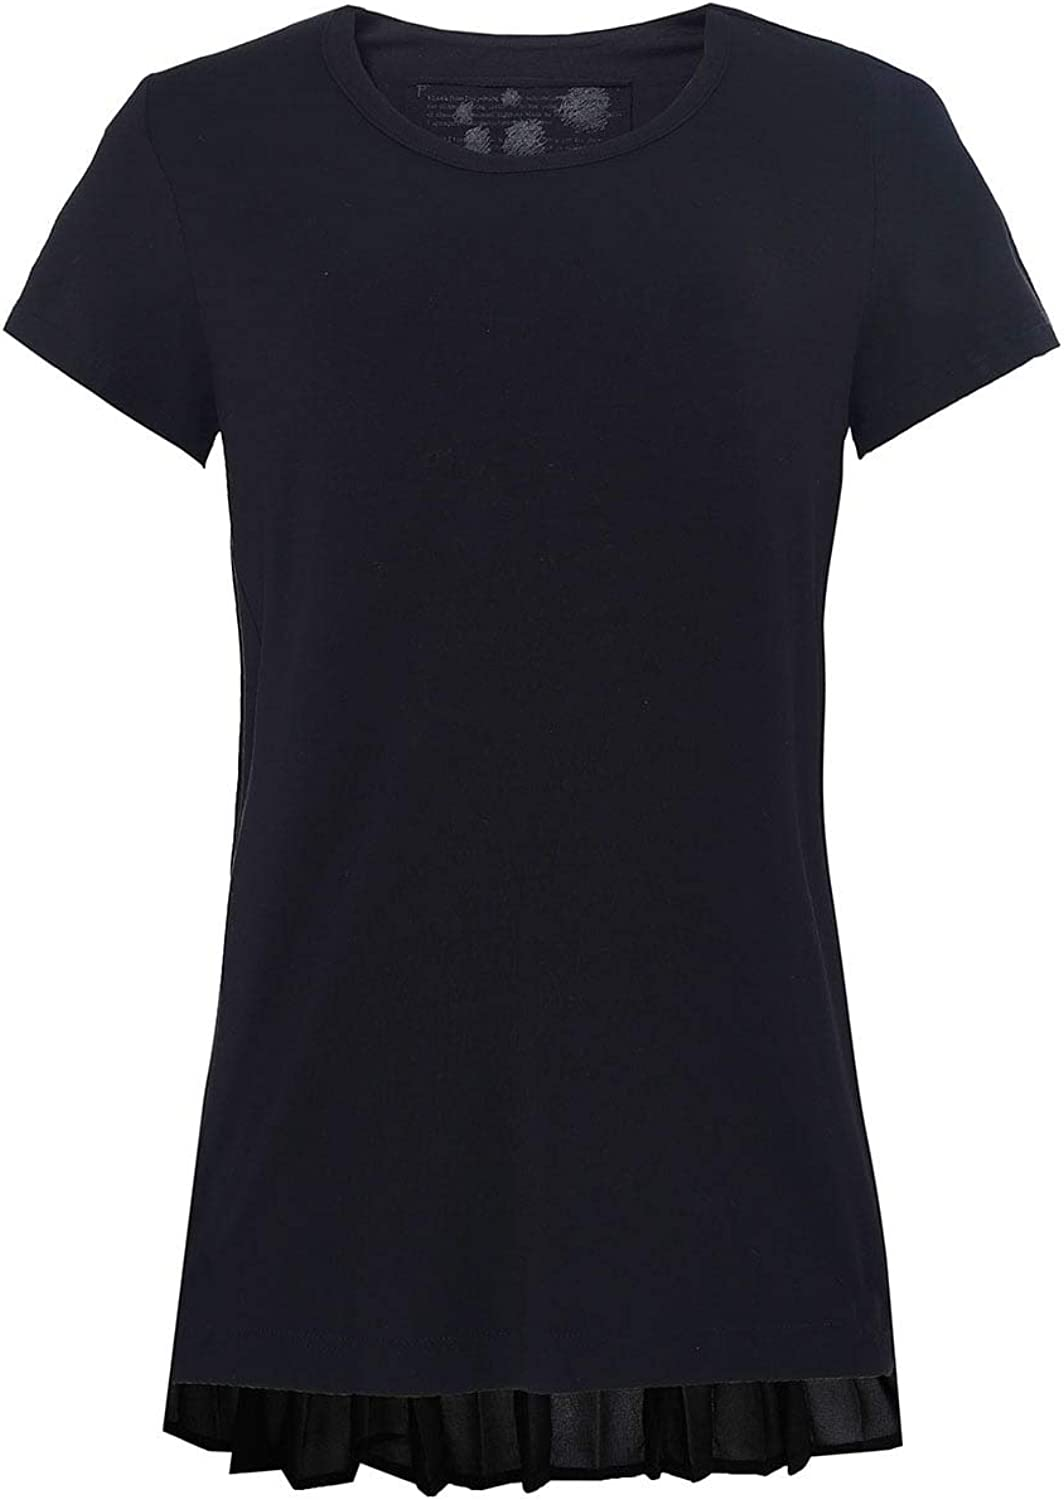 Rundholz Women's Jersey Pleated TShirt Black